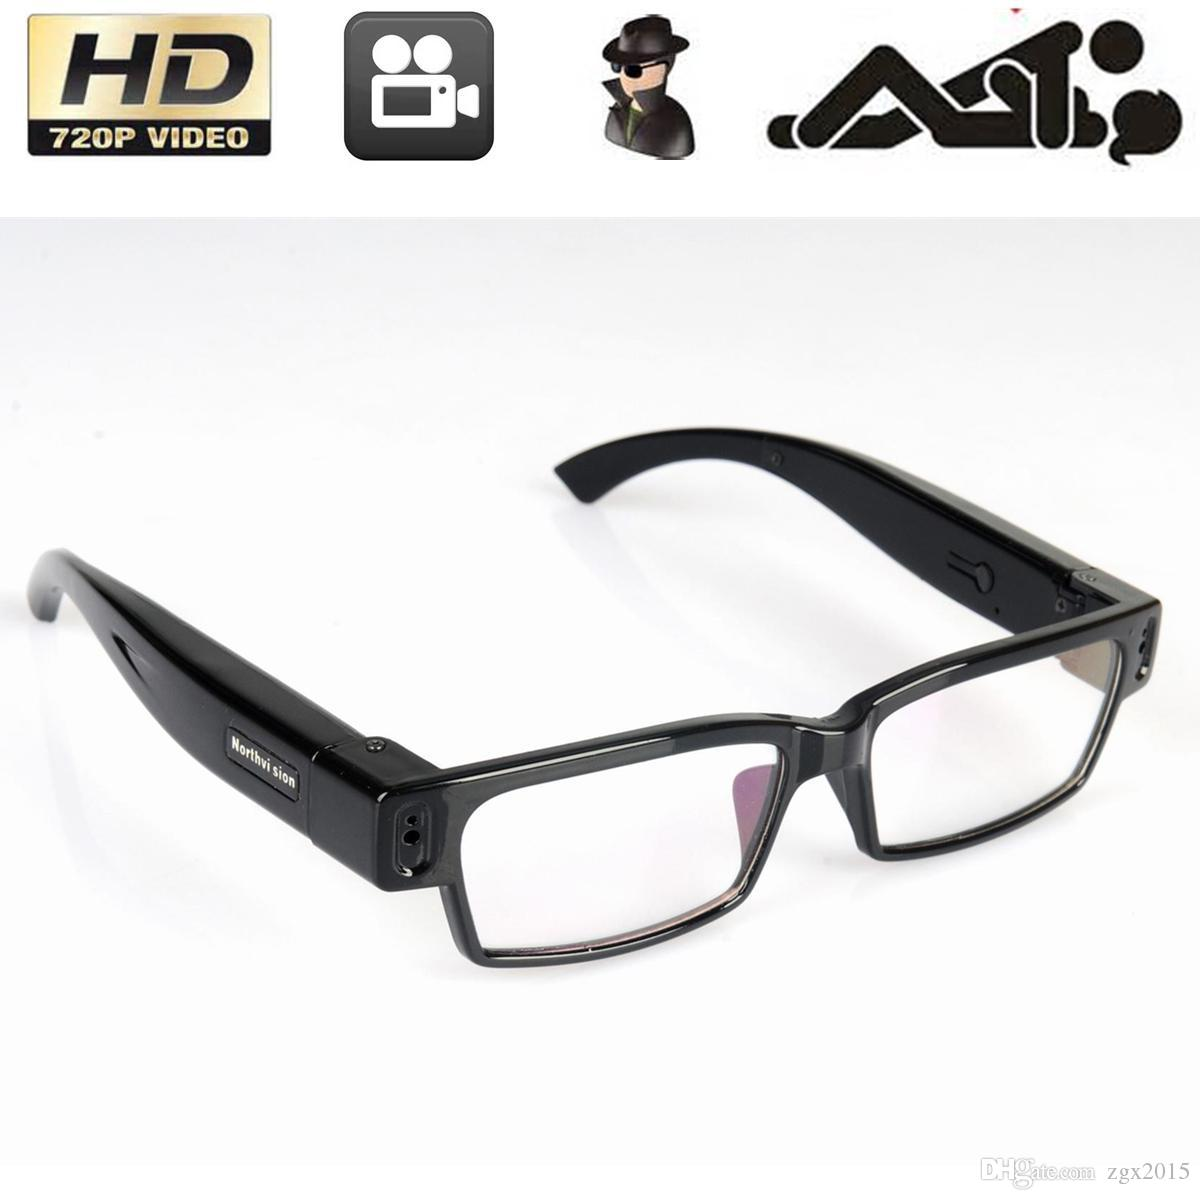 Hd 720p Spy Hidden Video Camera Eyewear Fashion Glass Mini ...